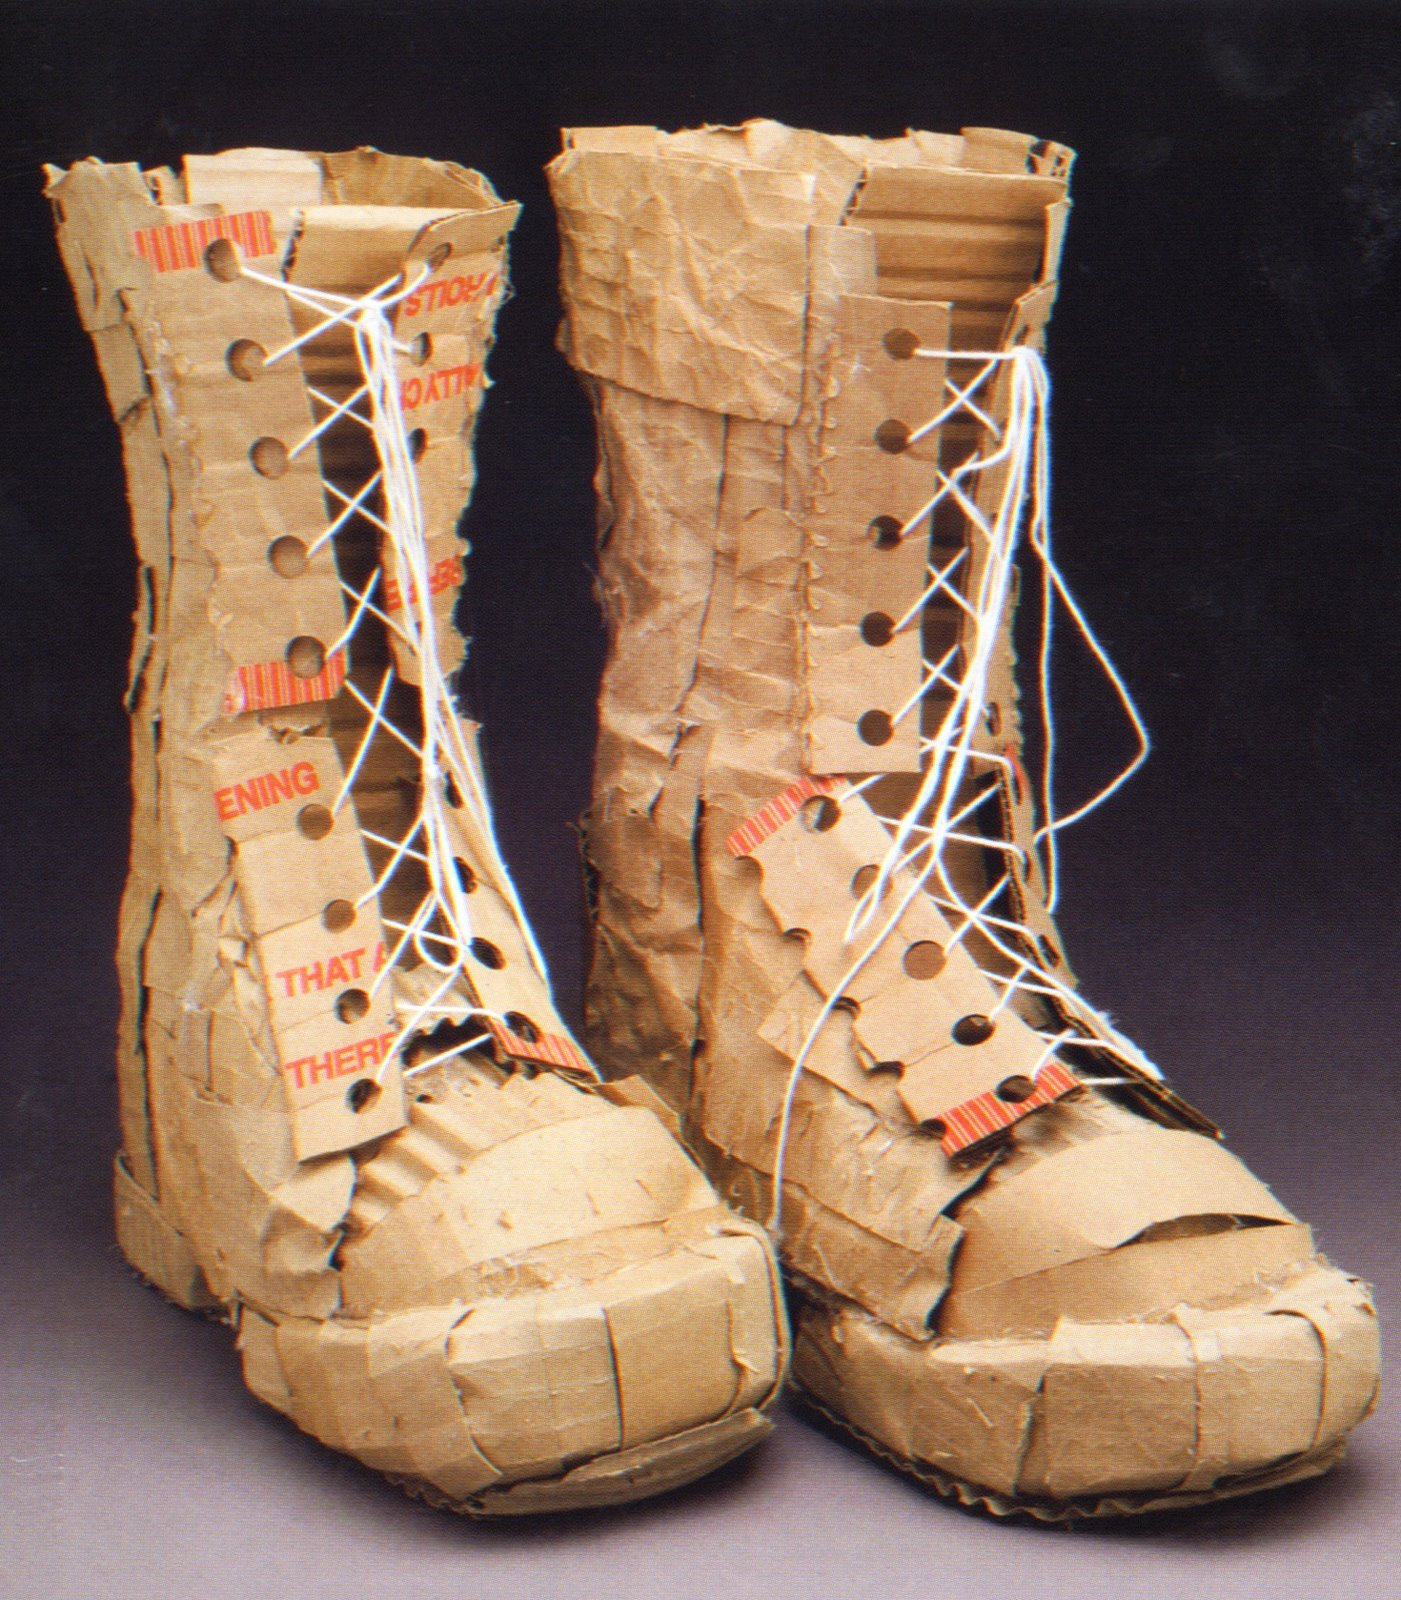 img_2350-jpg.34953_DIY boots anyone?_Clothing_Squat the Planet_8:07 PM